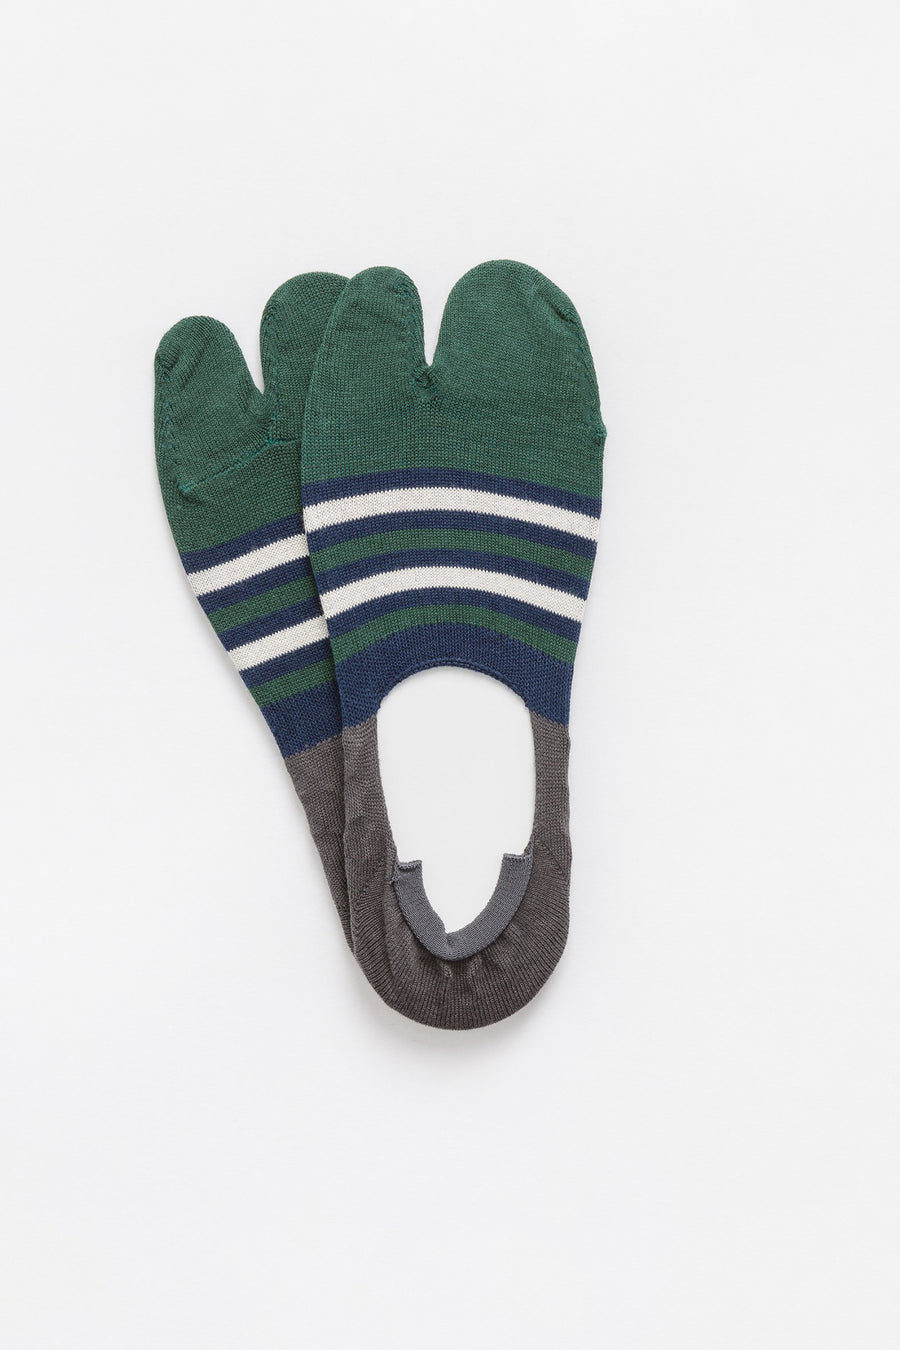 Chup 3 Point Grip Socks in Green/Blue - Notre